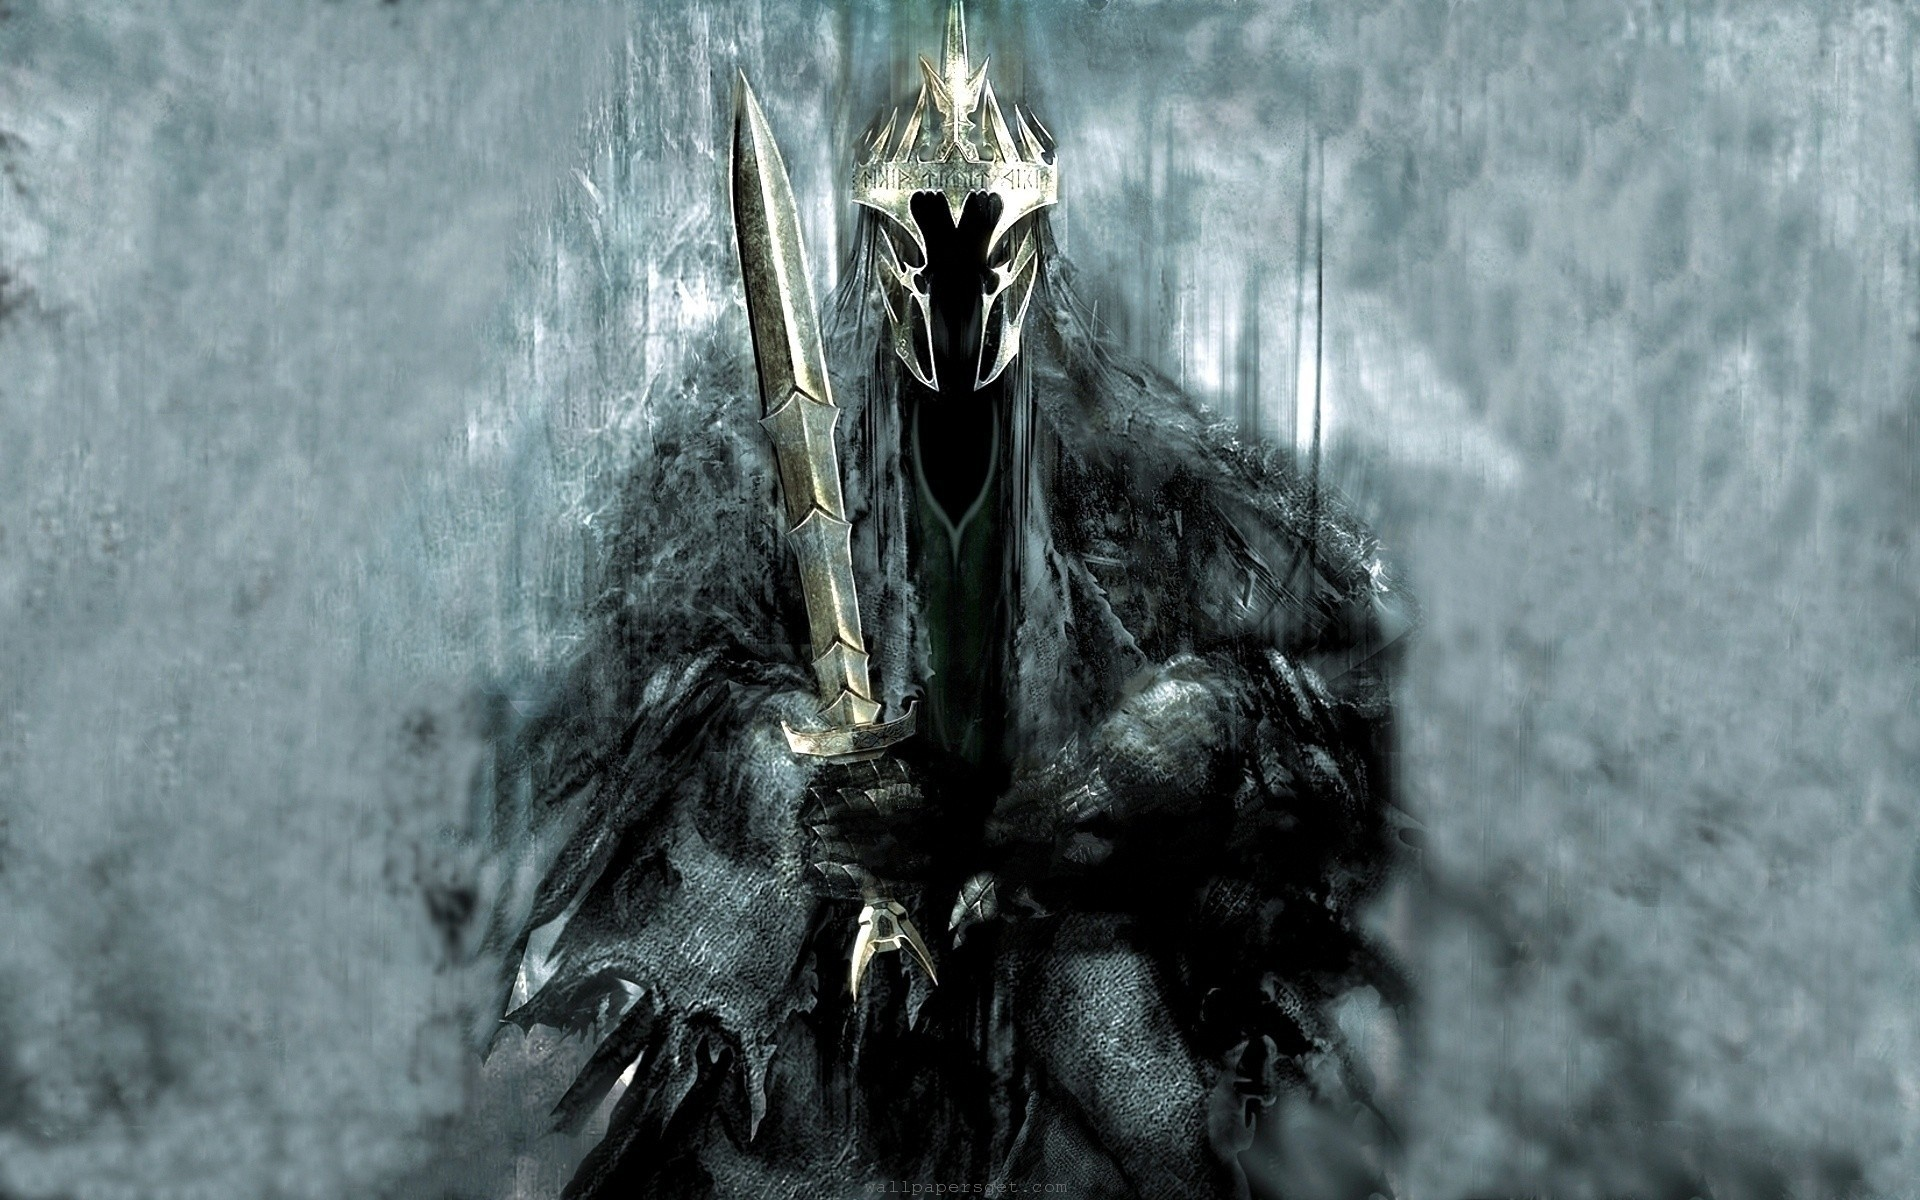 Dark-Lord-Sauron-Lord-of-the-Rings-Sauron-wallpaper-wp5804932